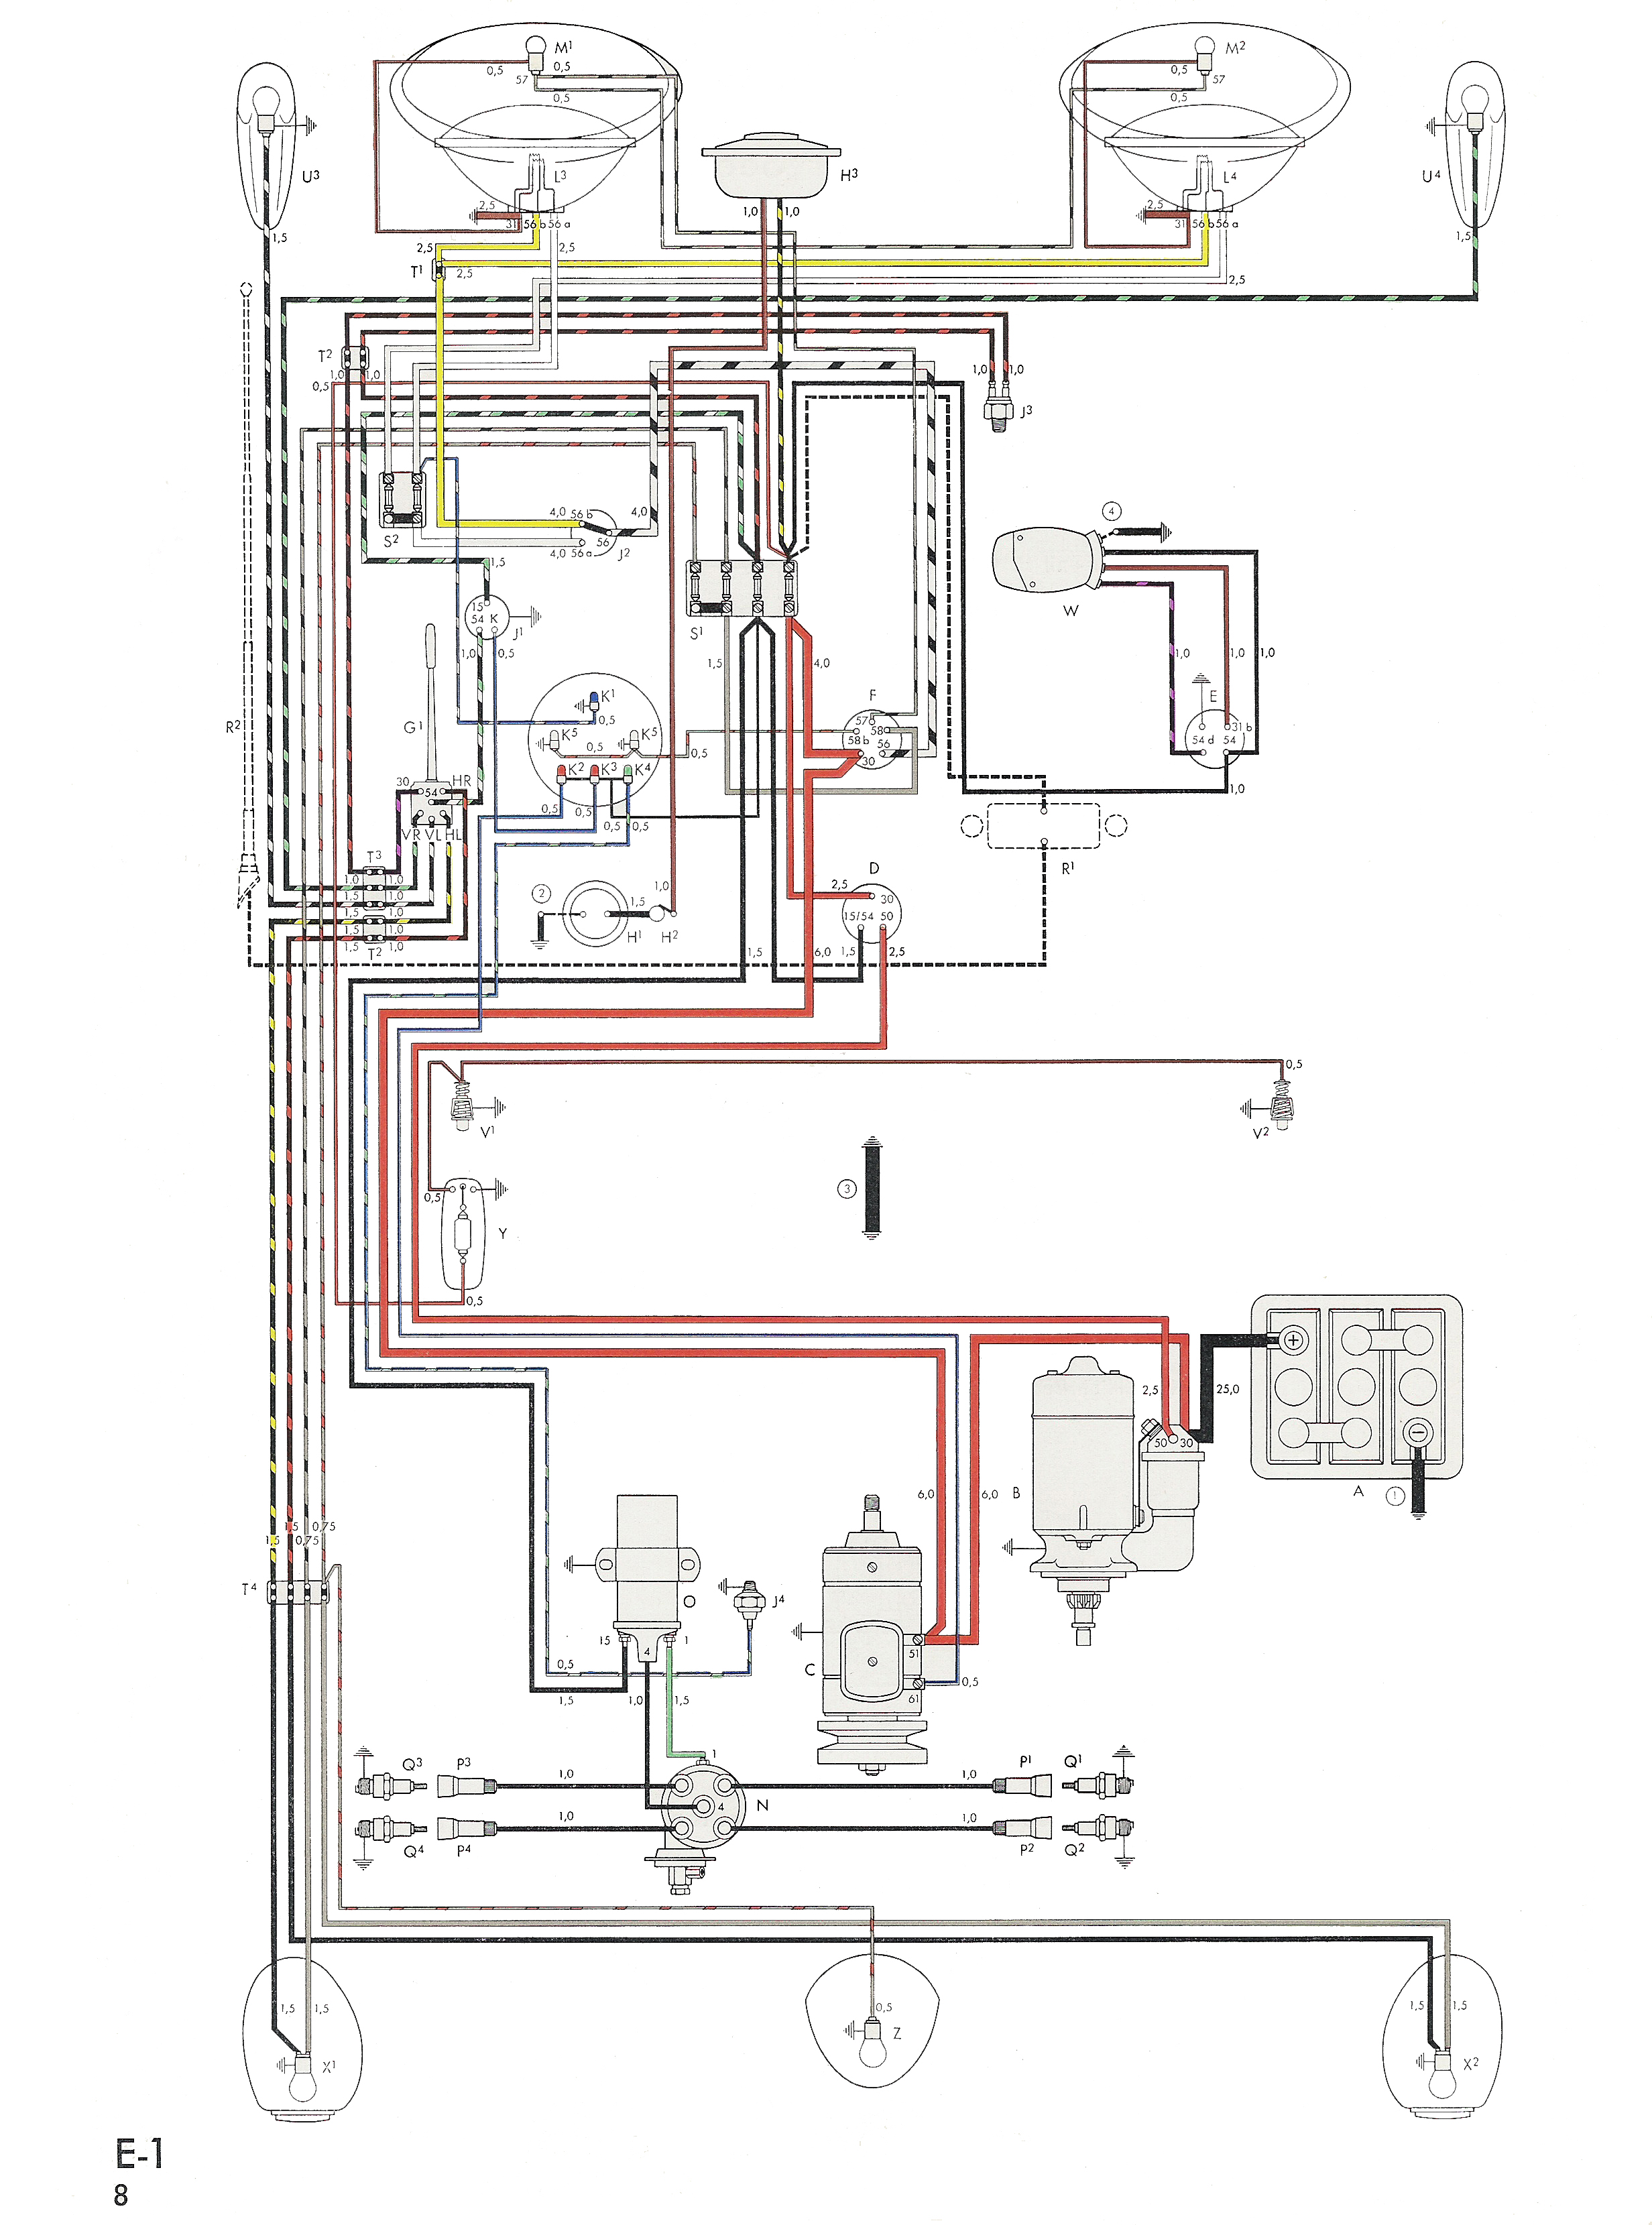 bug_58_USA_300dpi thesamba com type 1 wiring diagrams vw engine wiring diagram at mr168.co